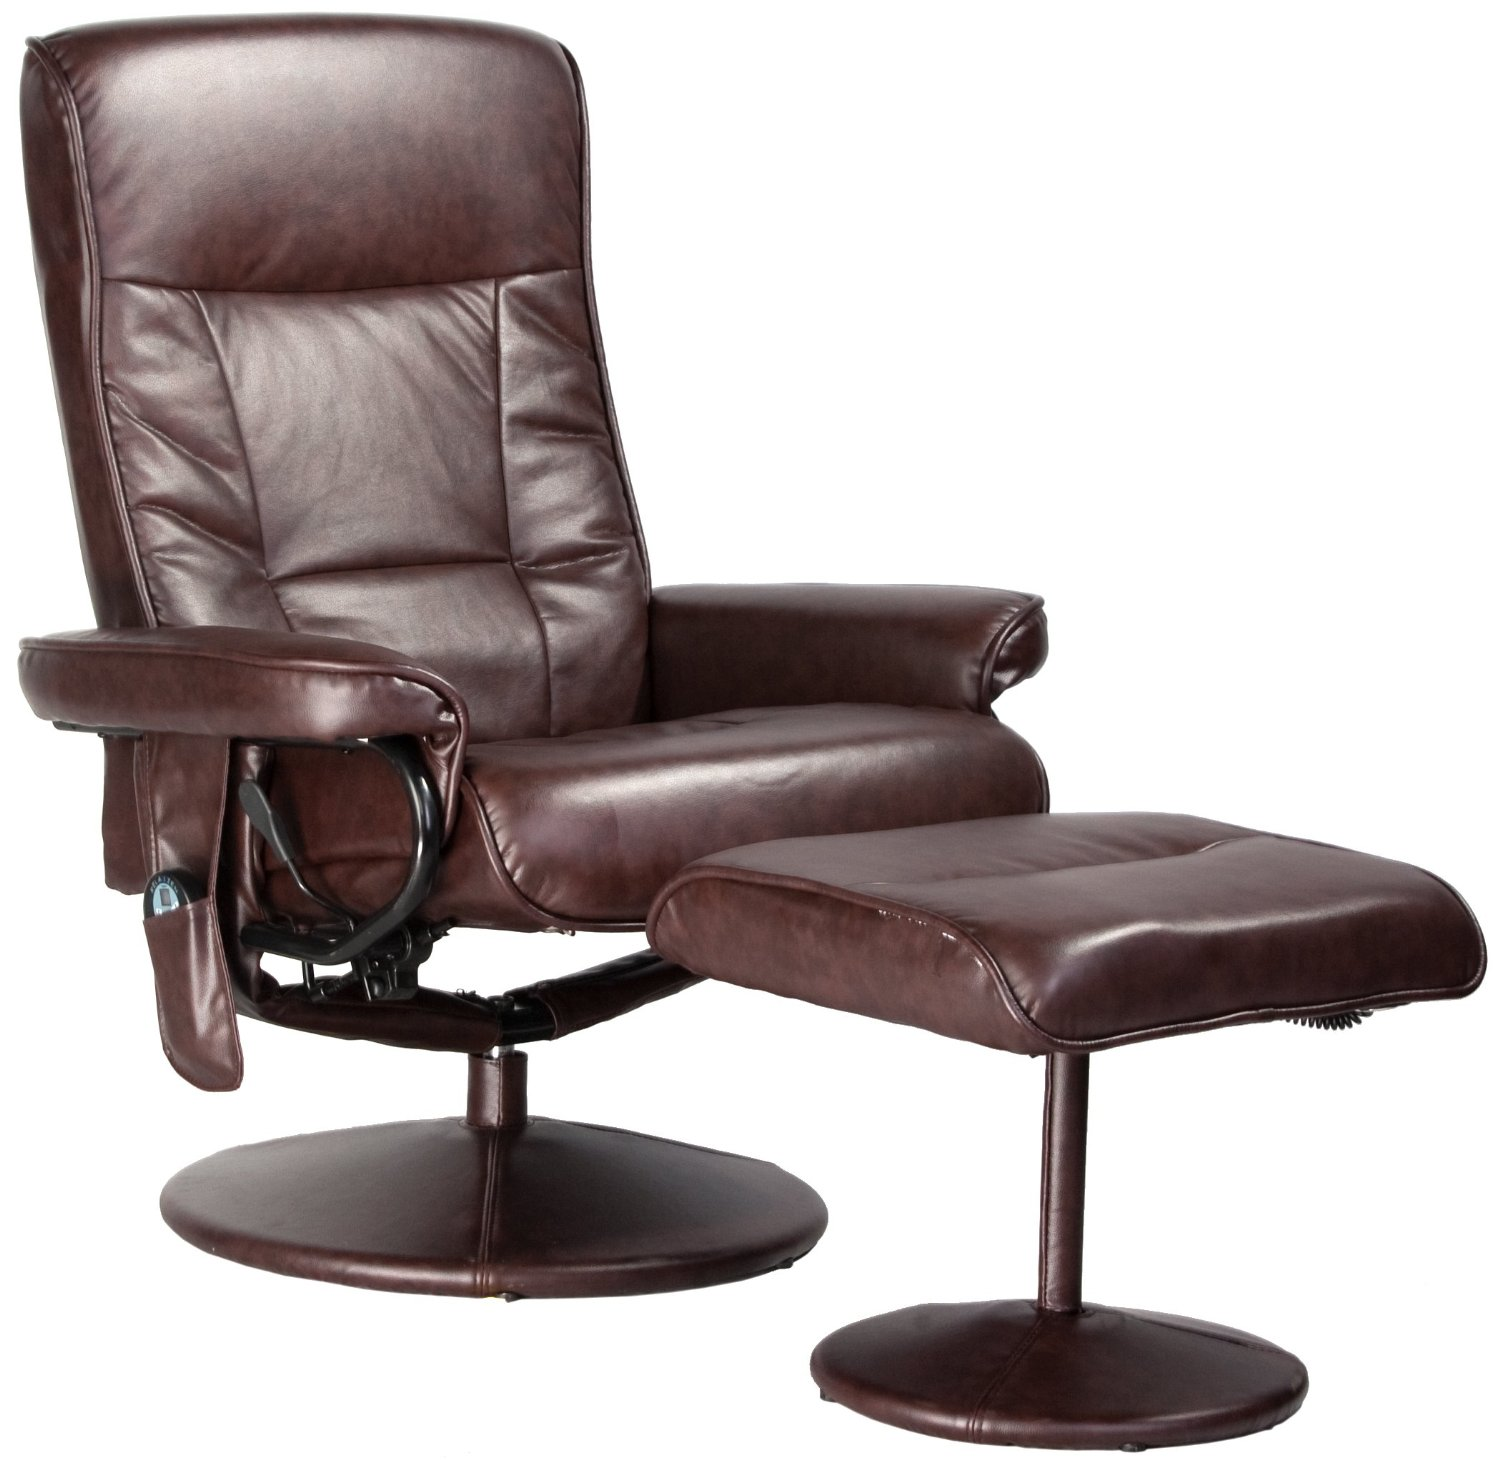 Top 10 best cheap massage chairs under 500 dollars for Popular massage chair